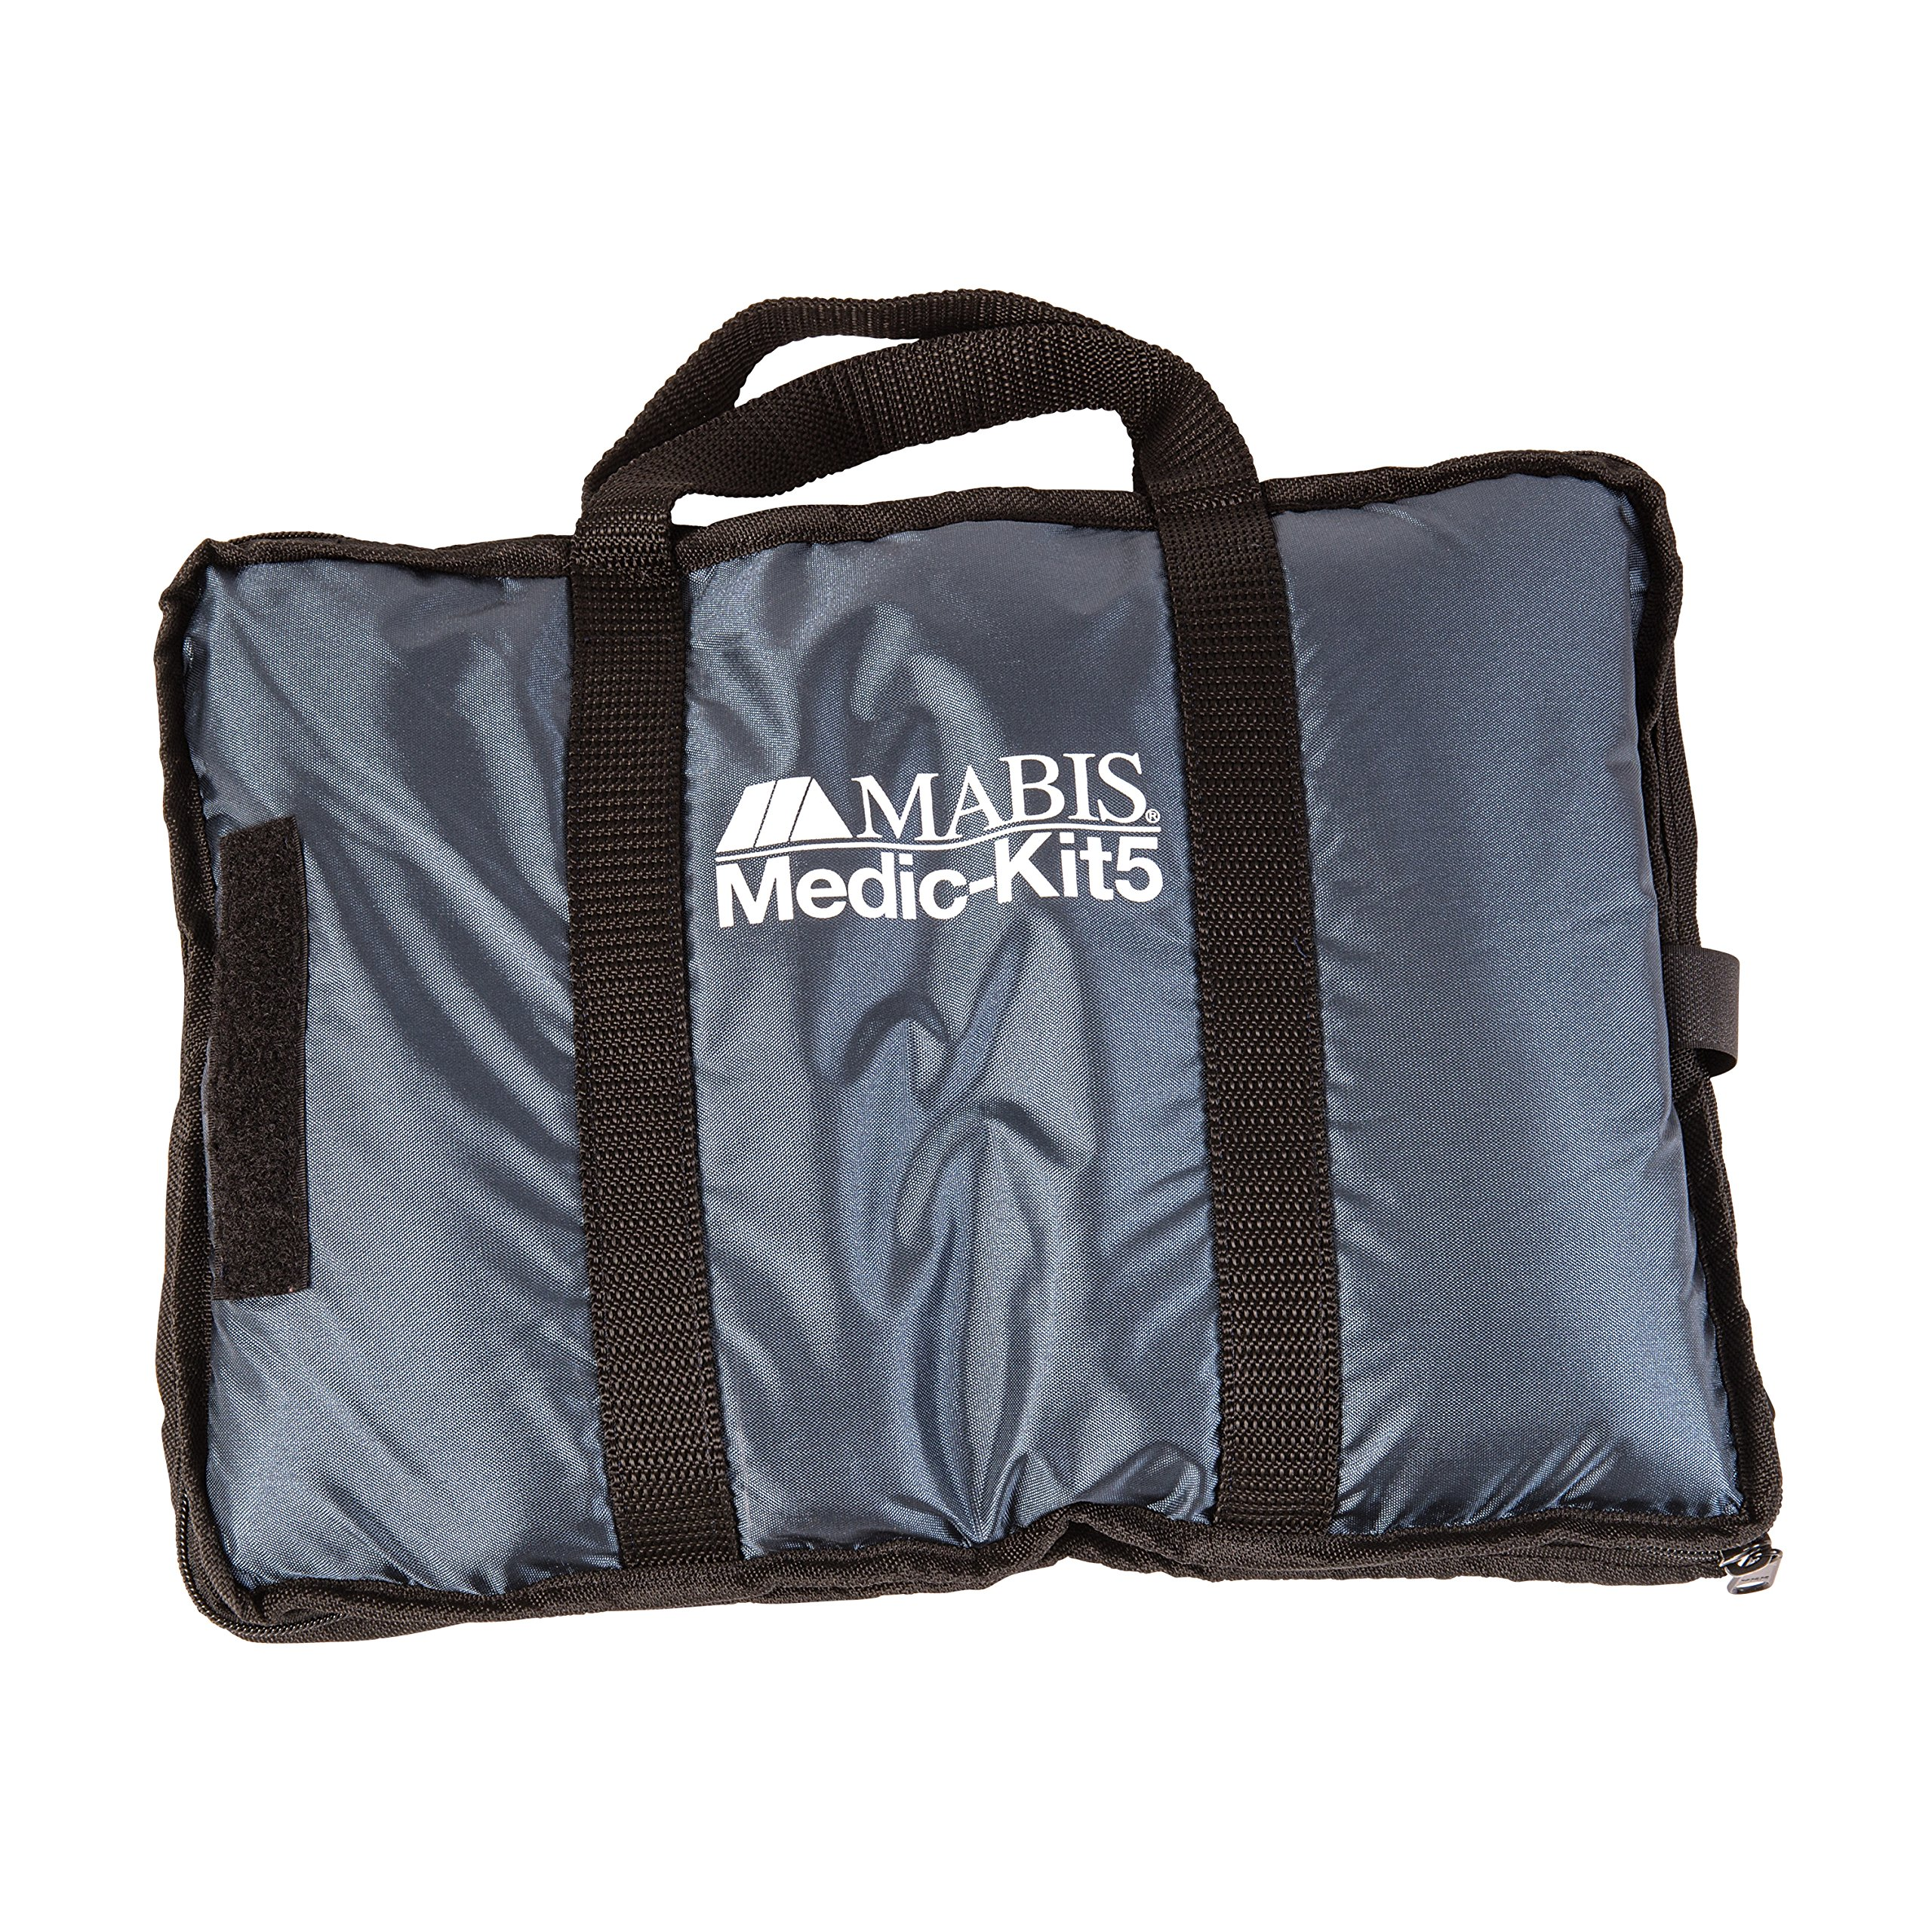 MABIS Medic-Kit5 EMT and Paramedic First Aid Kit with 5 Calibrated Nylon Blood Pressure Cuffs, Blue